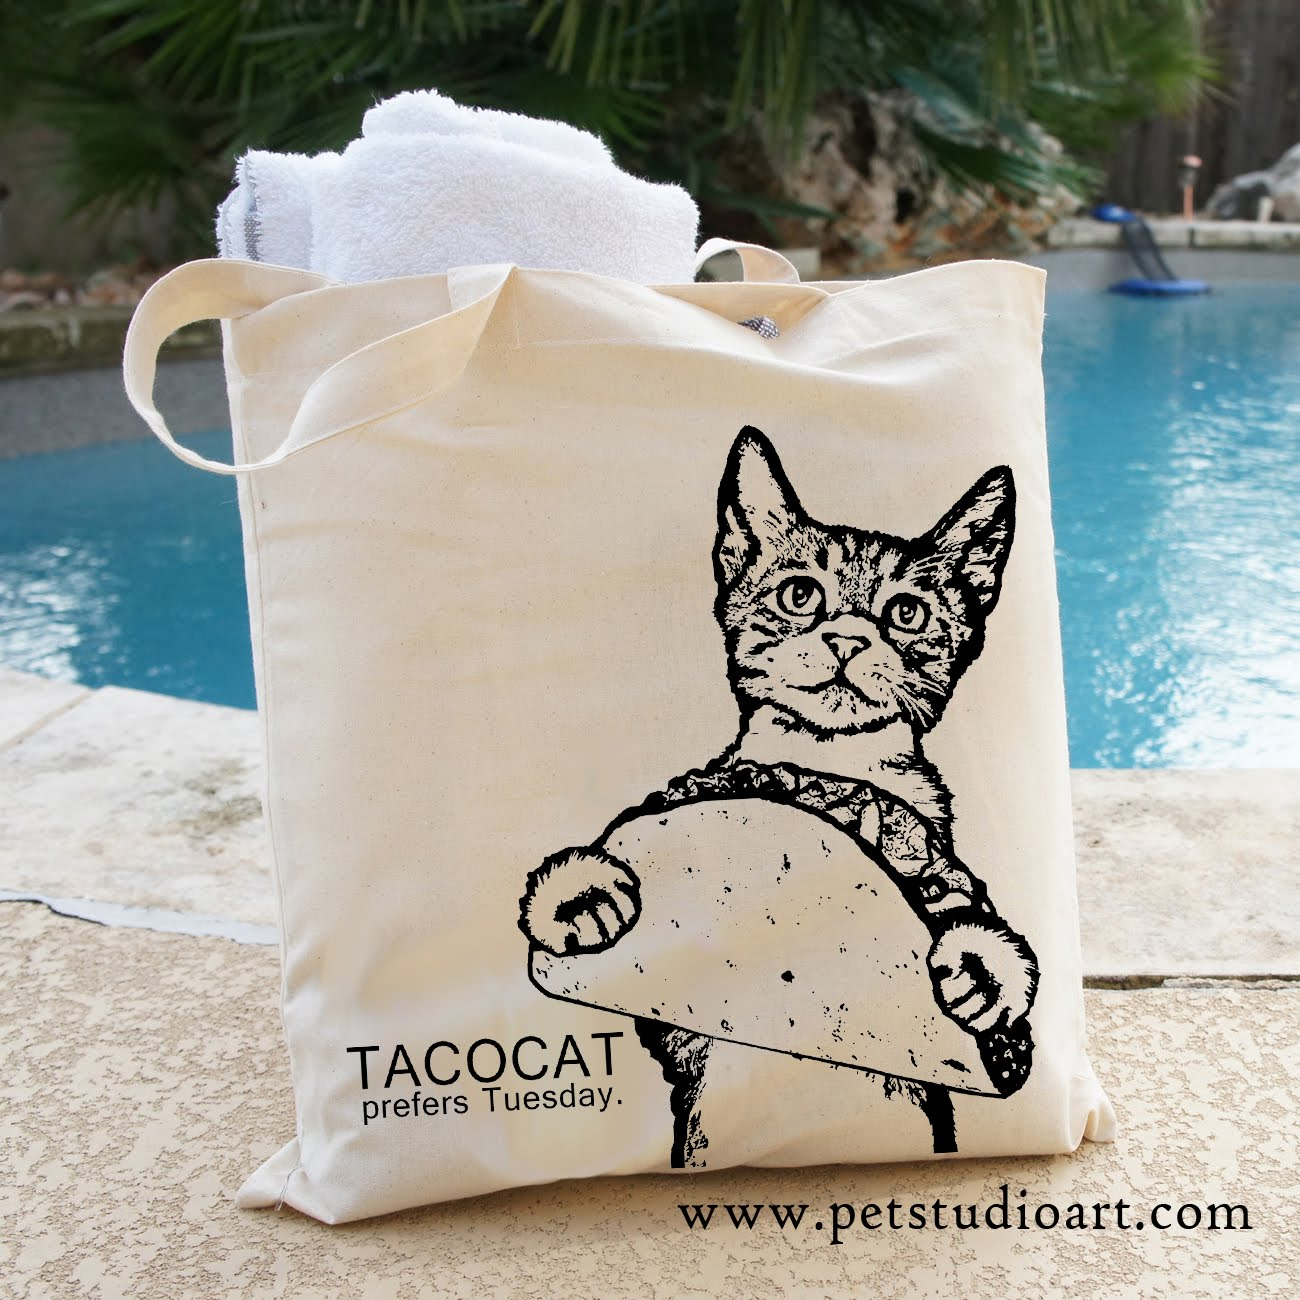 Tacocat Prefers Tuesdays Tote Bag  $15